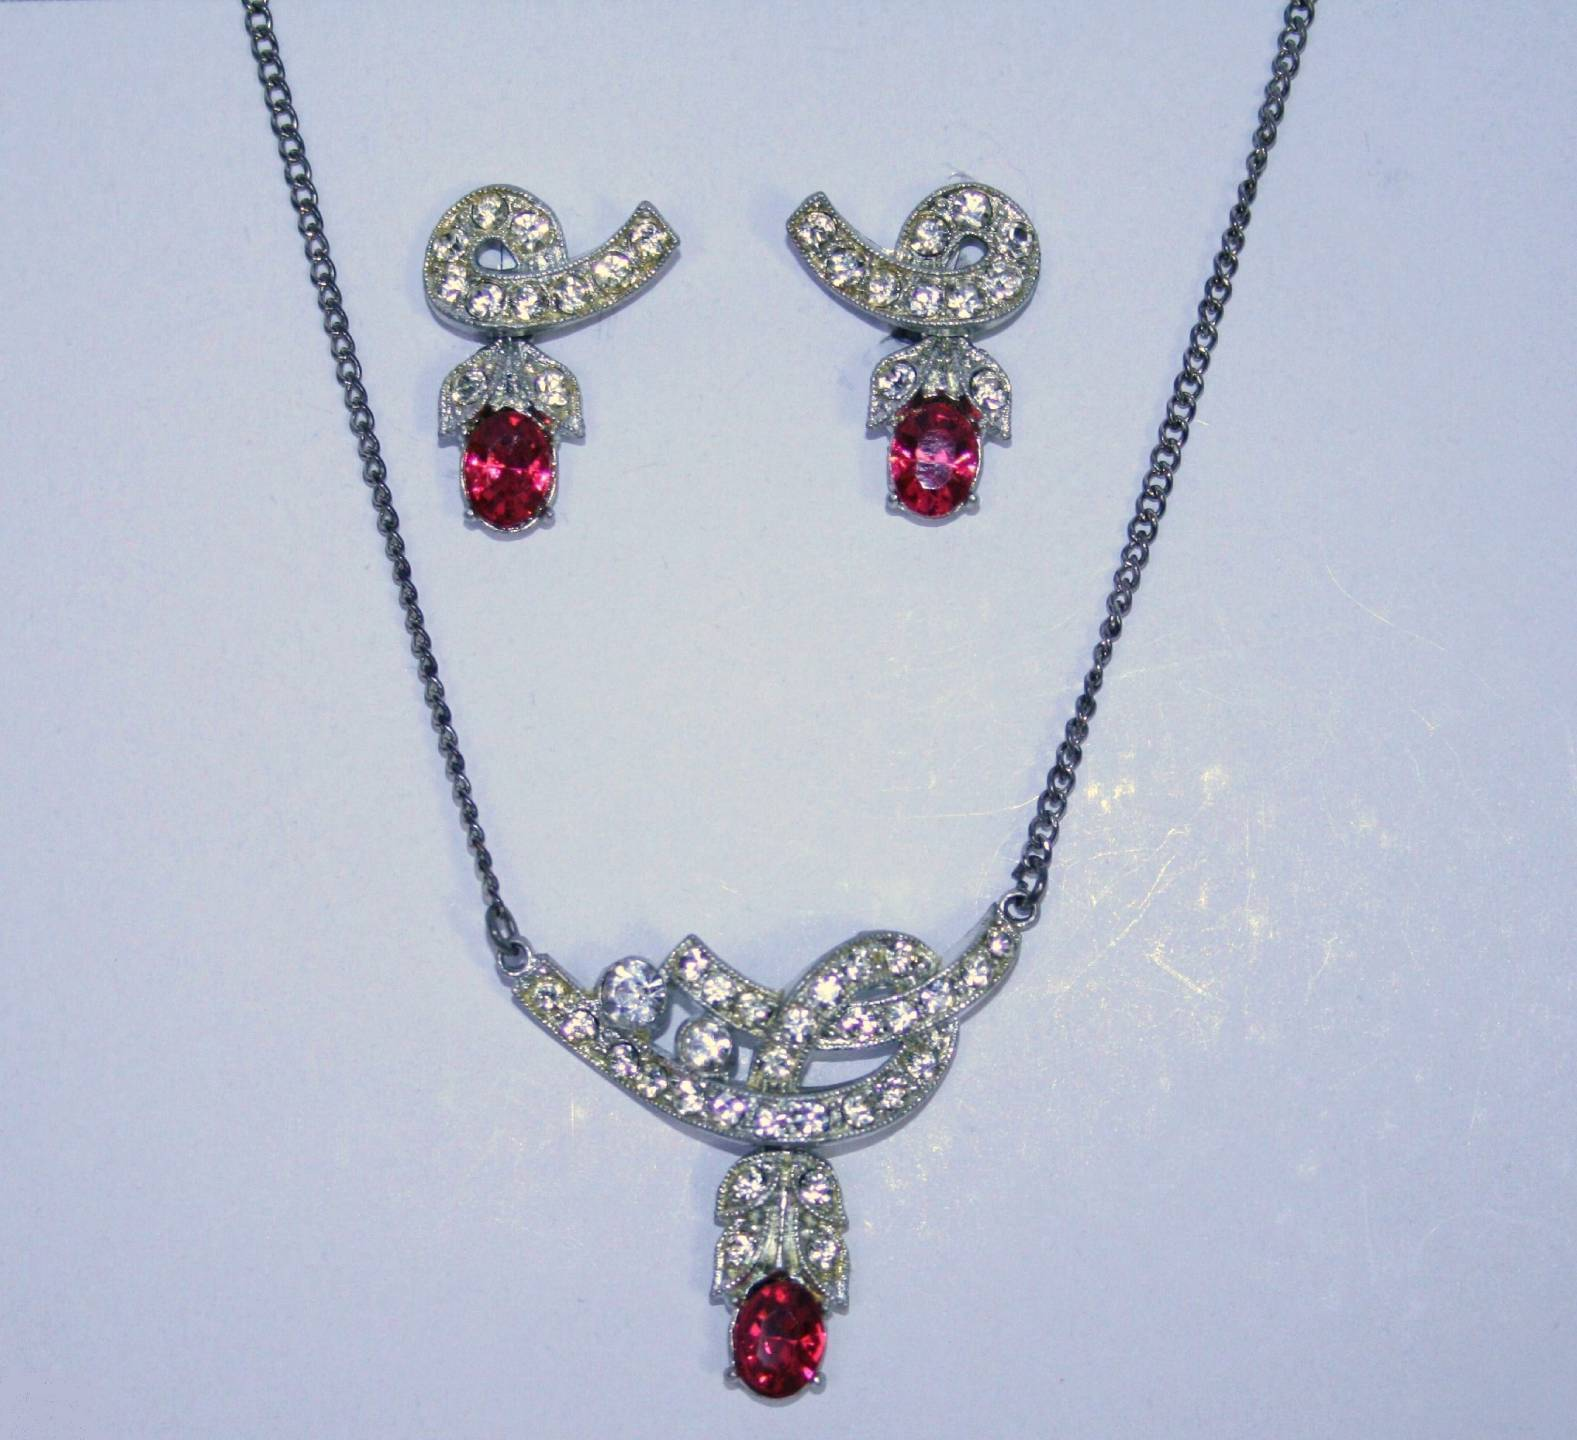 Vintage Nemo Signed Hot Pink Crystal Screw Earrings and Necklace  J130GS